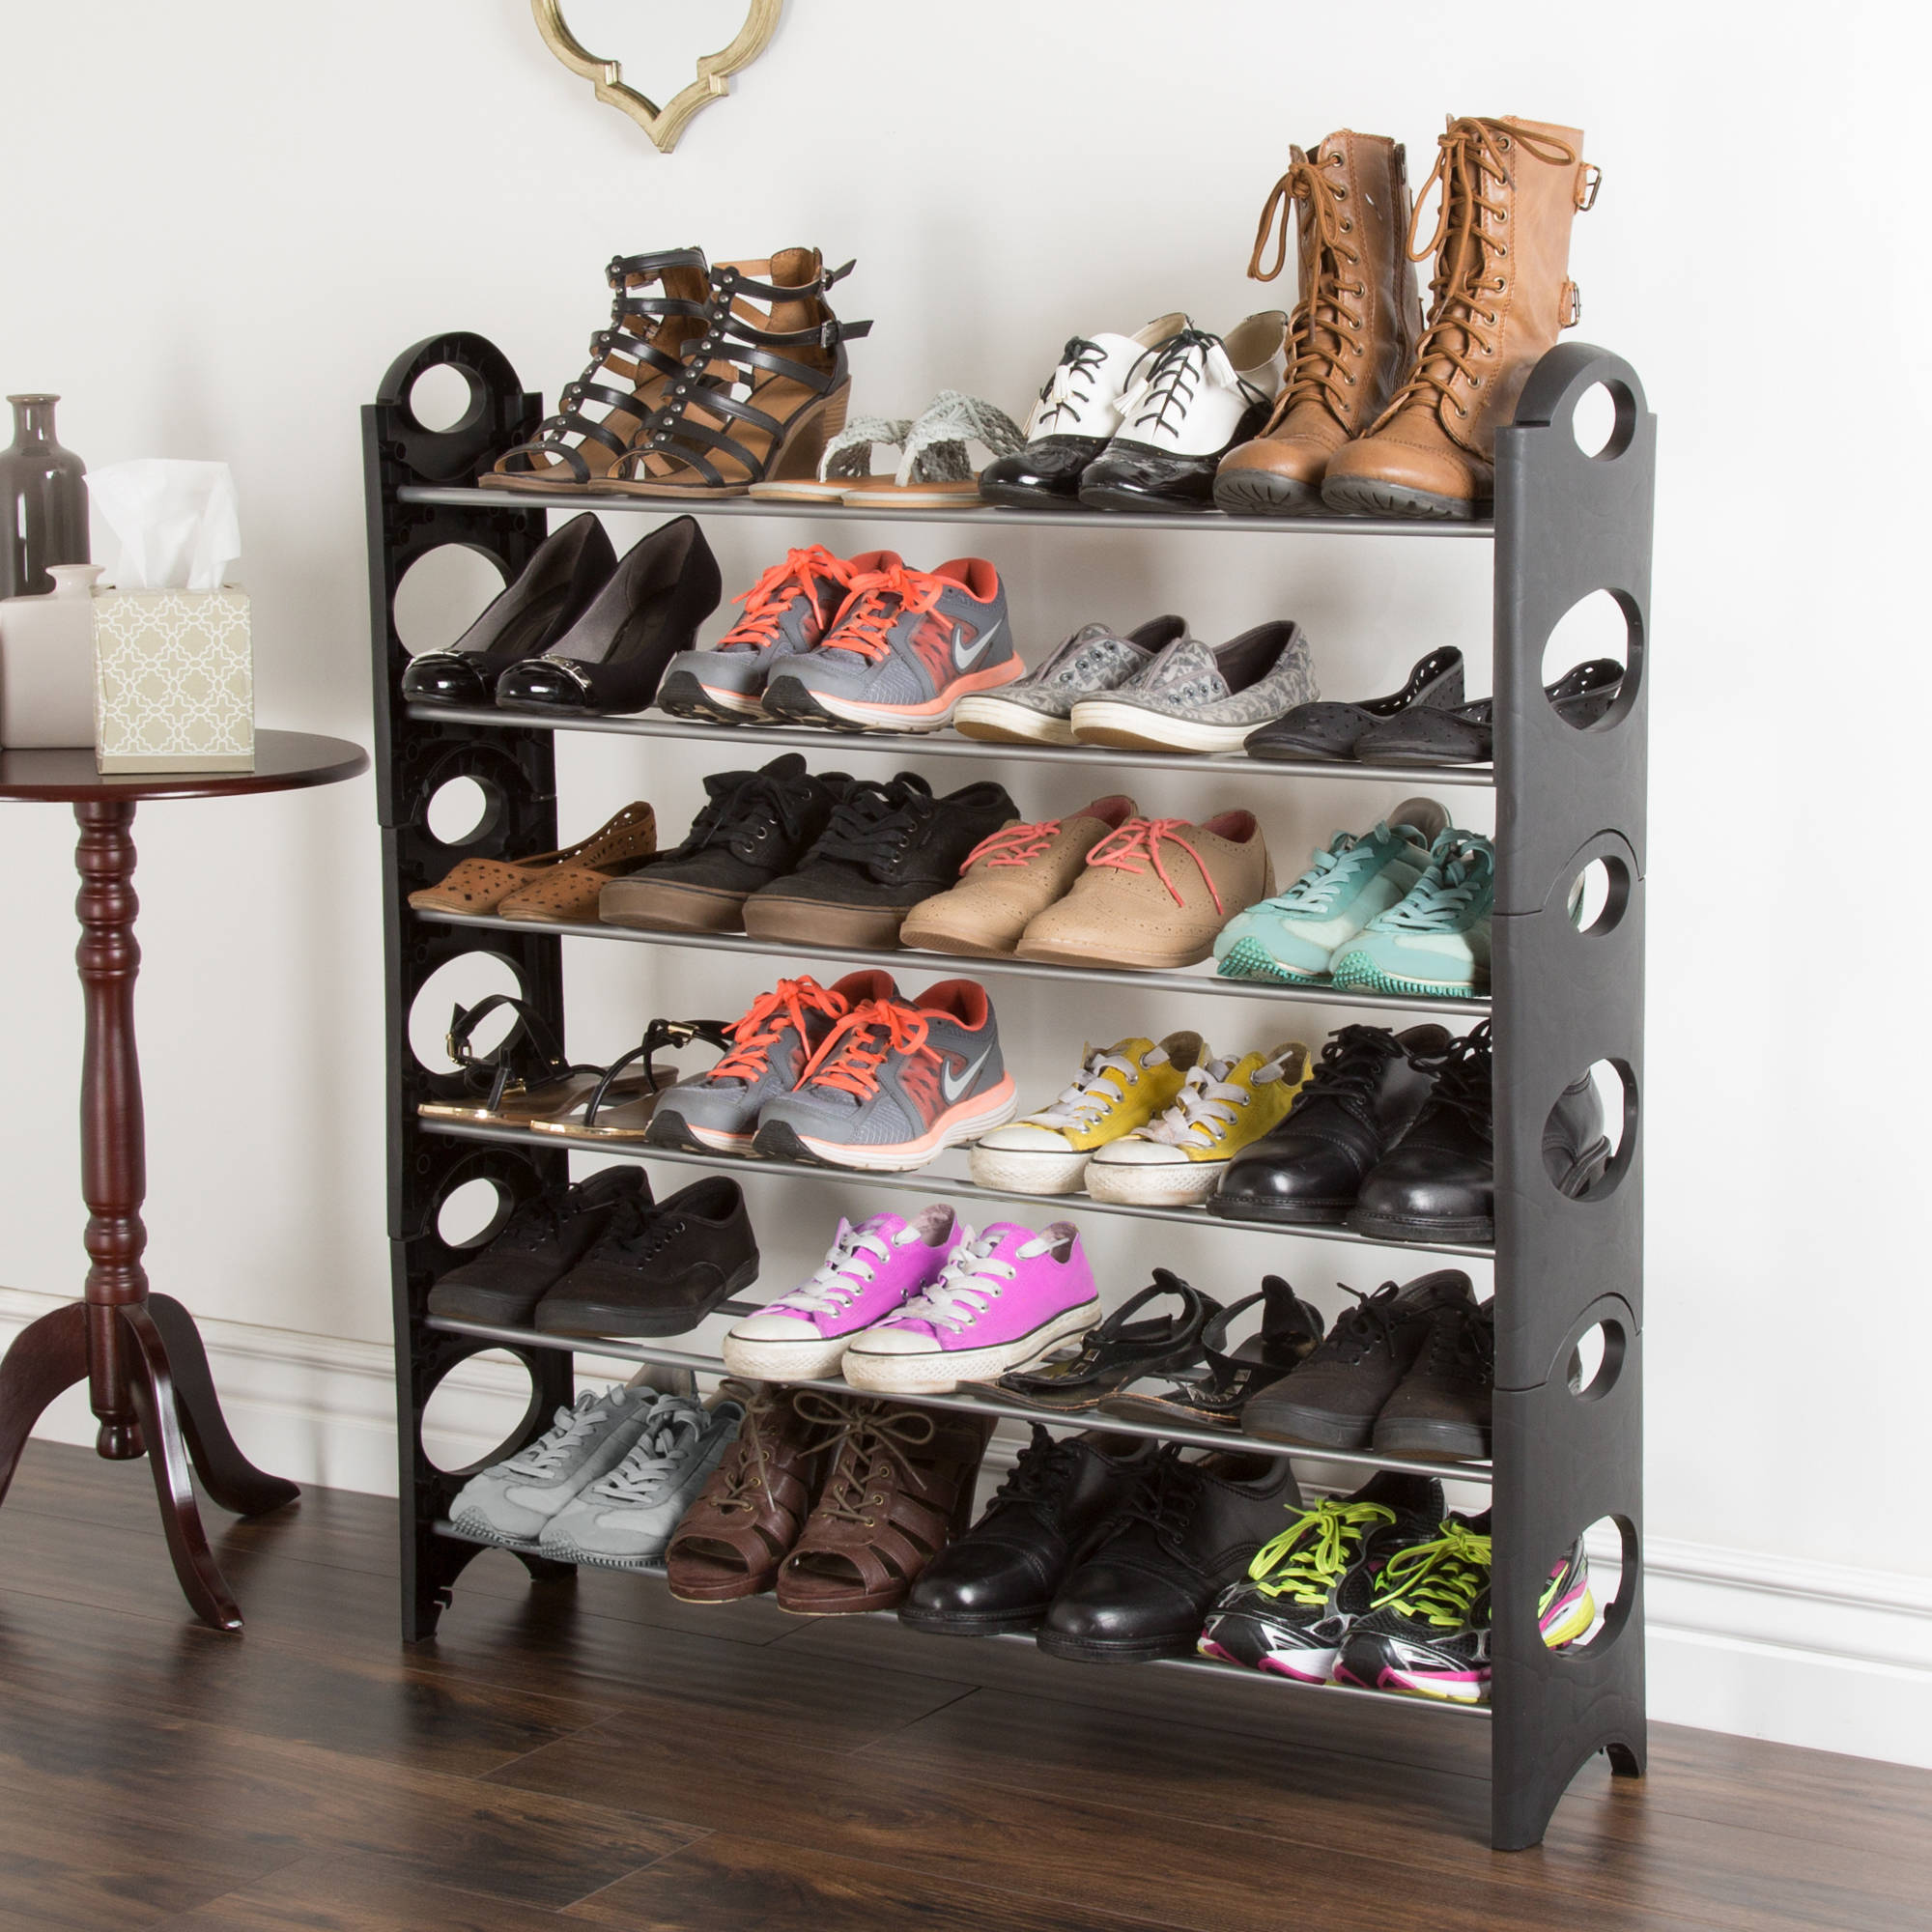 Shoe Rack, Stackable Storage Bench U2013 Closet, Bathroom, Kitchen, Entry  Organizer,